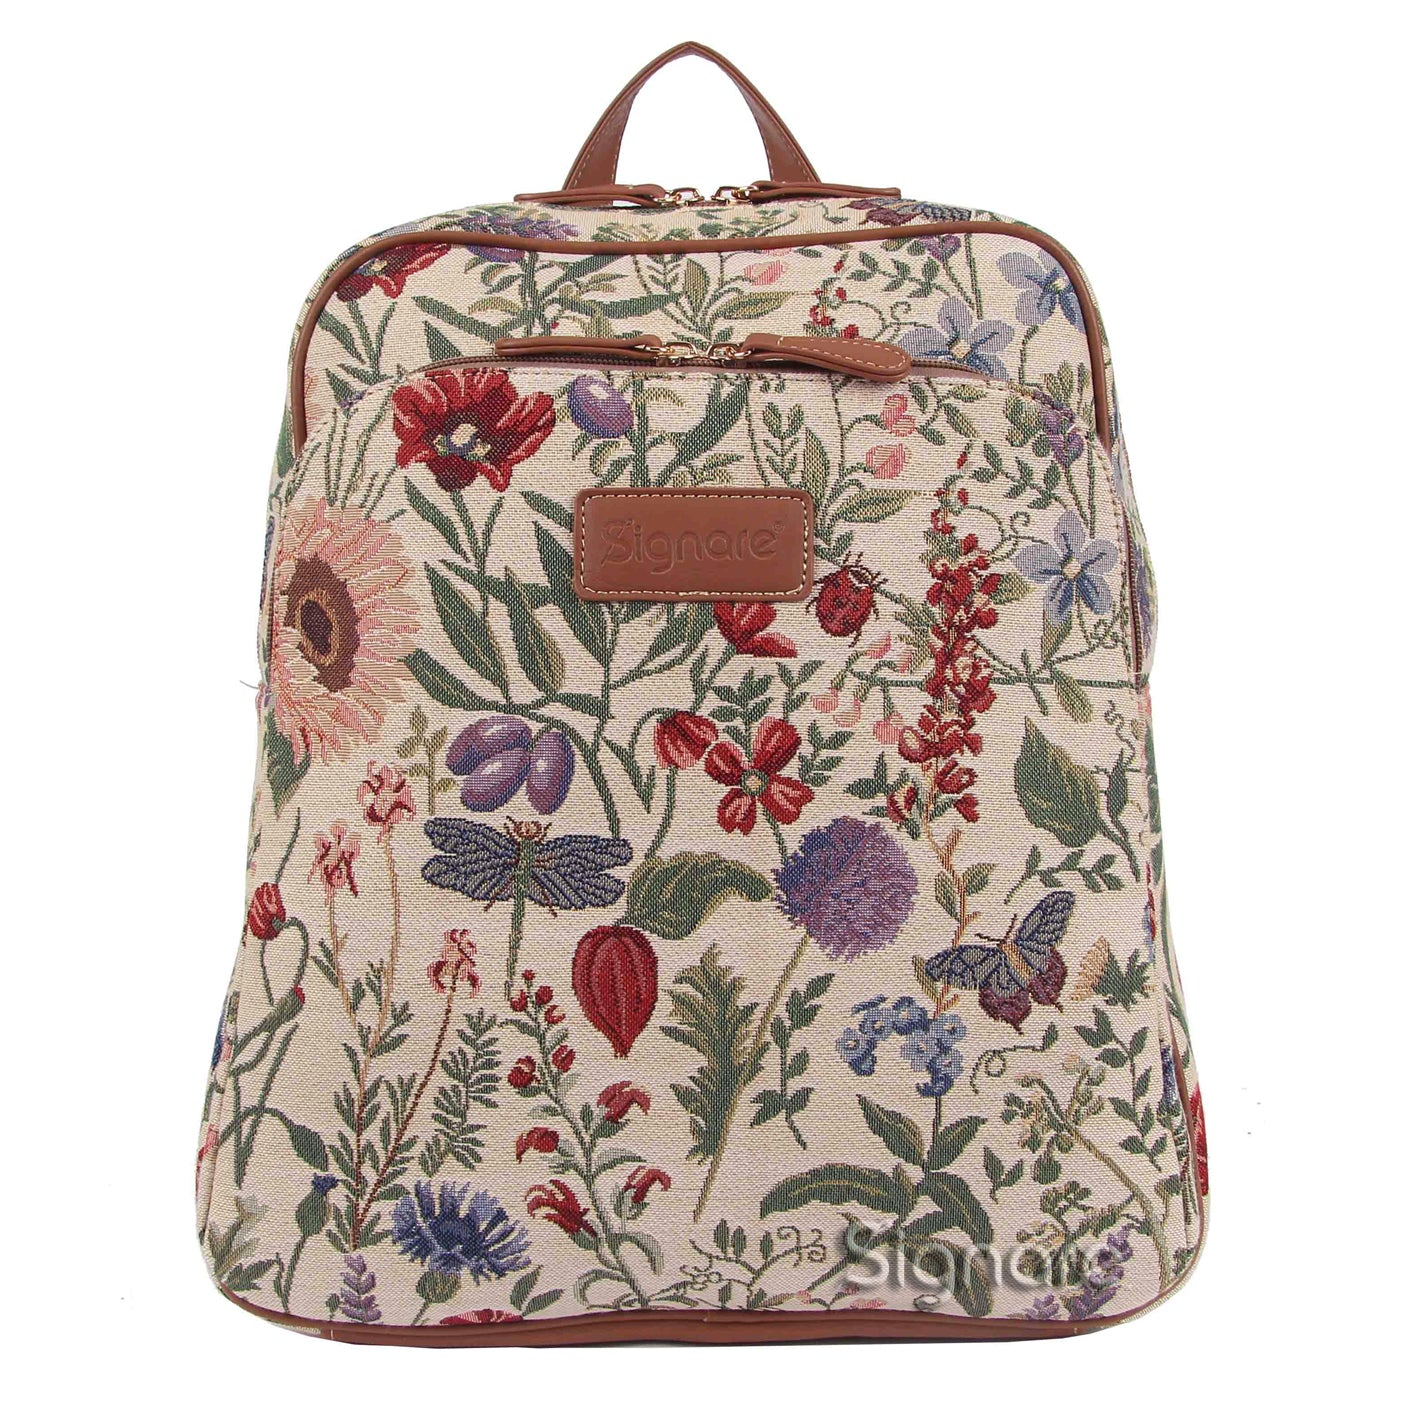 BKPK-MGD | Morning Garden Backpack - www.signareusa.com